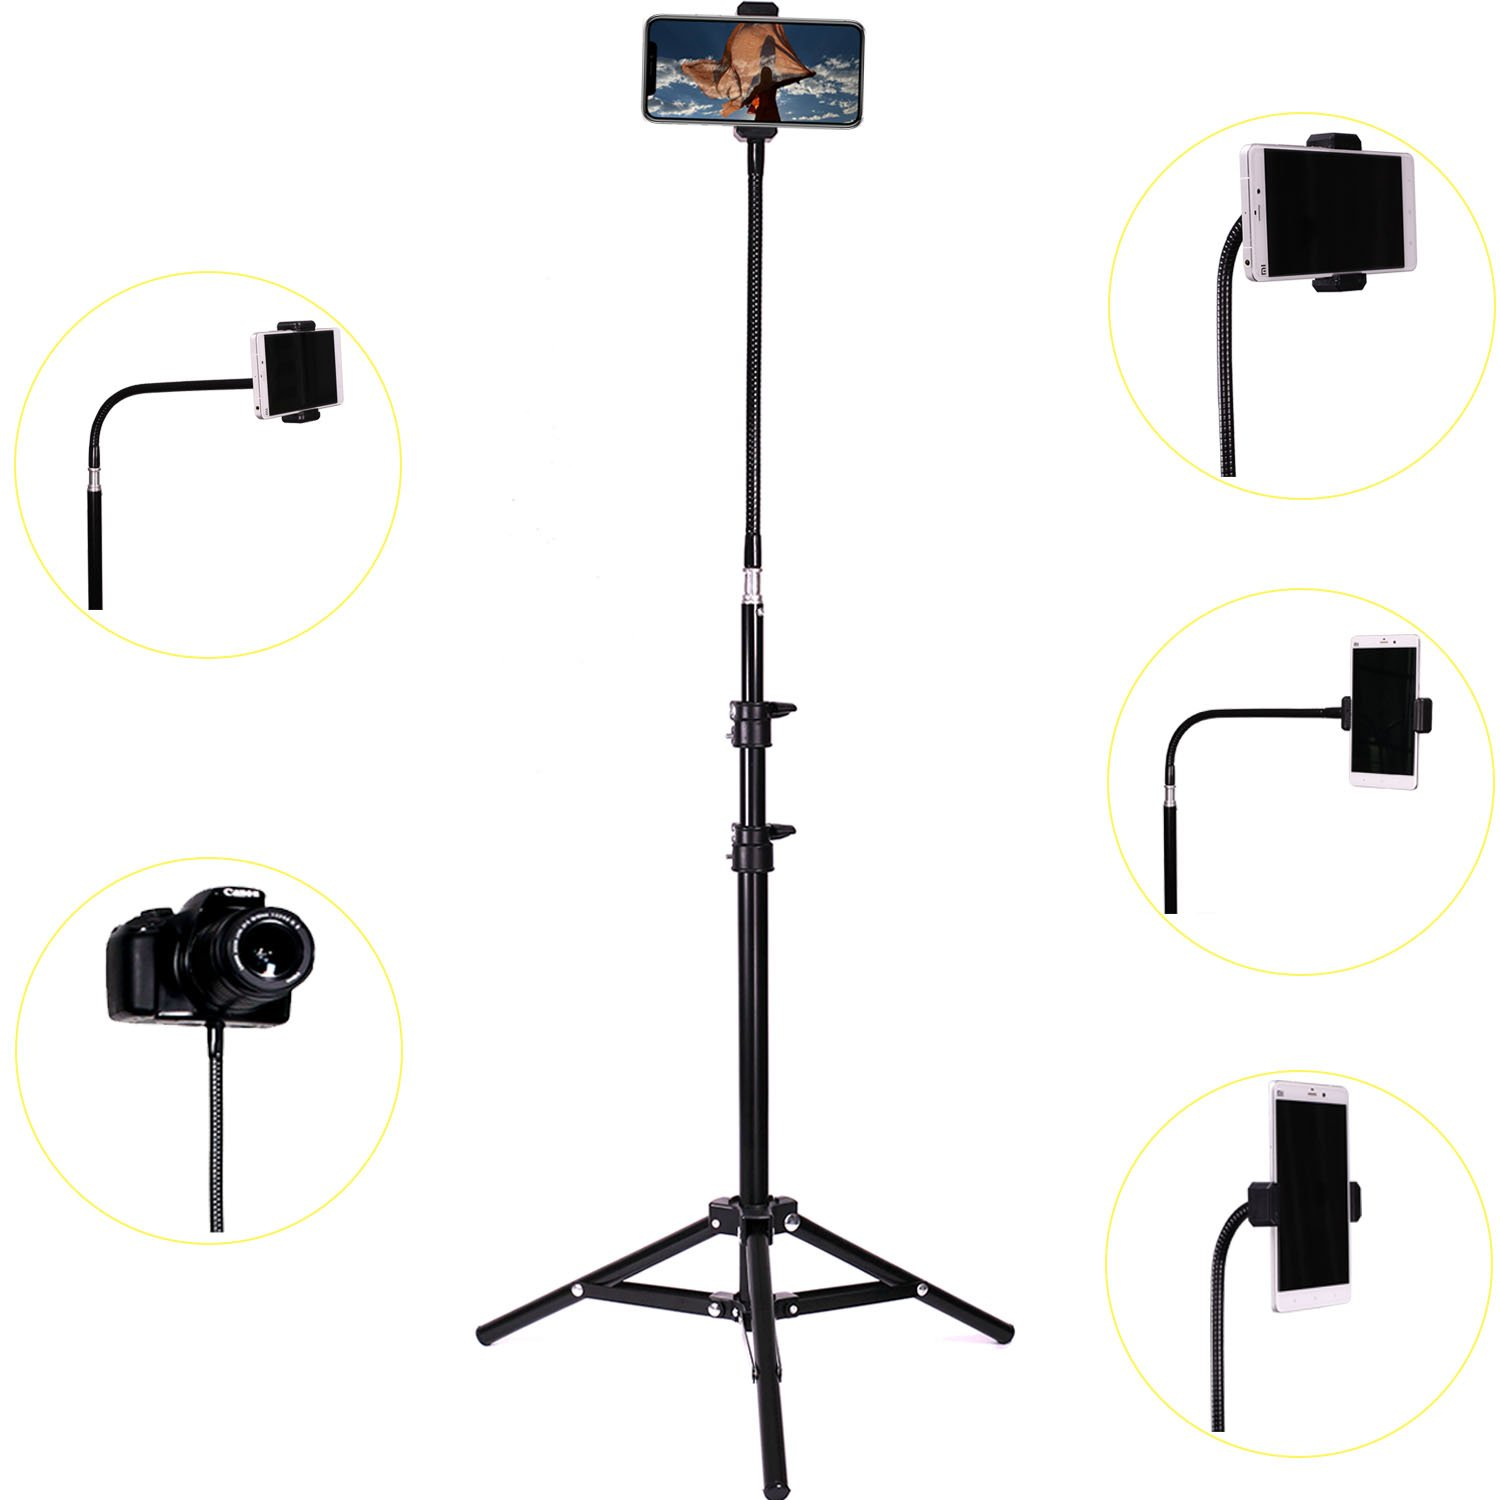 Haitent Retractable Adjustable Cell Phone Tall Tripod Stand Holder for iPhone X,8,7 Plus, 7, 6, 6 Plus,360 Degree Rotatable Flexible Universal Gooseneck Smartphone Stand with Clamp by Haitent (Image #3)